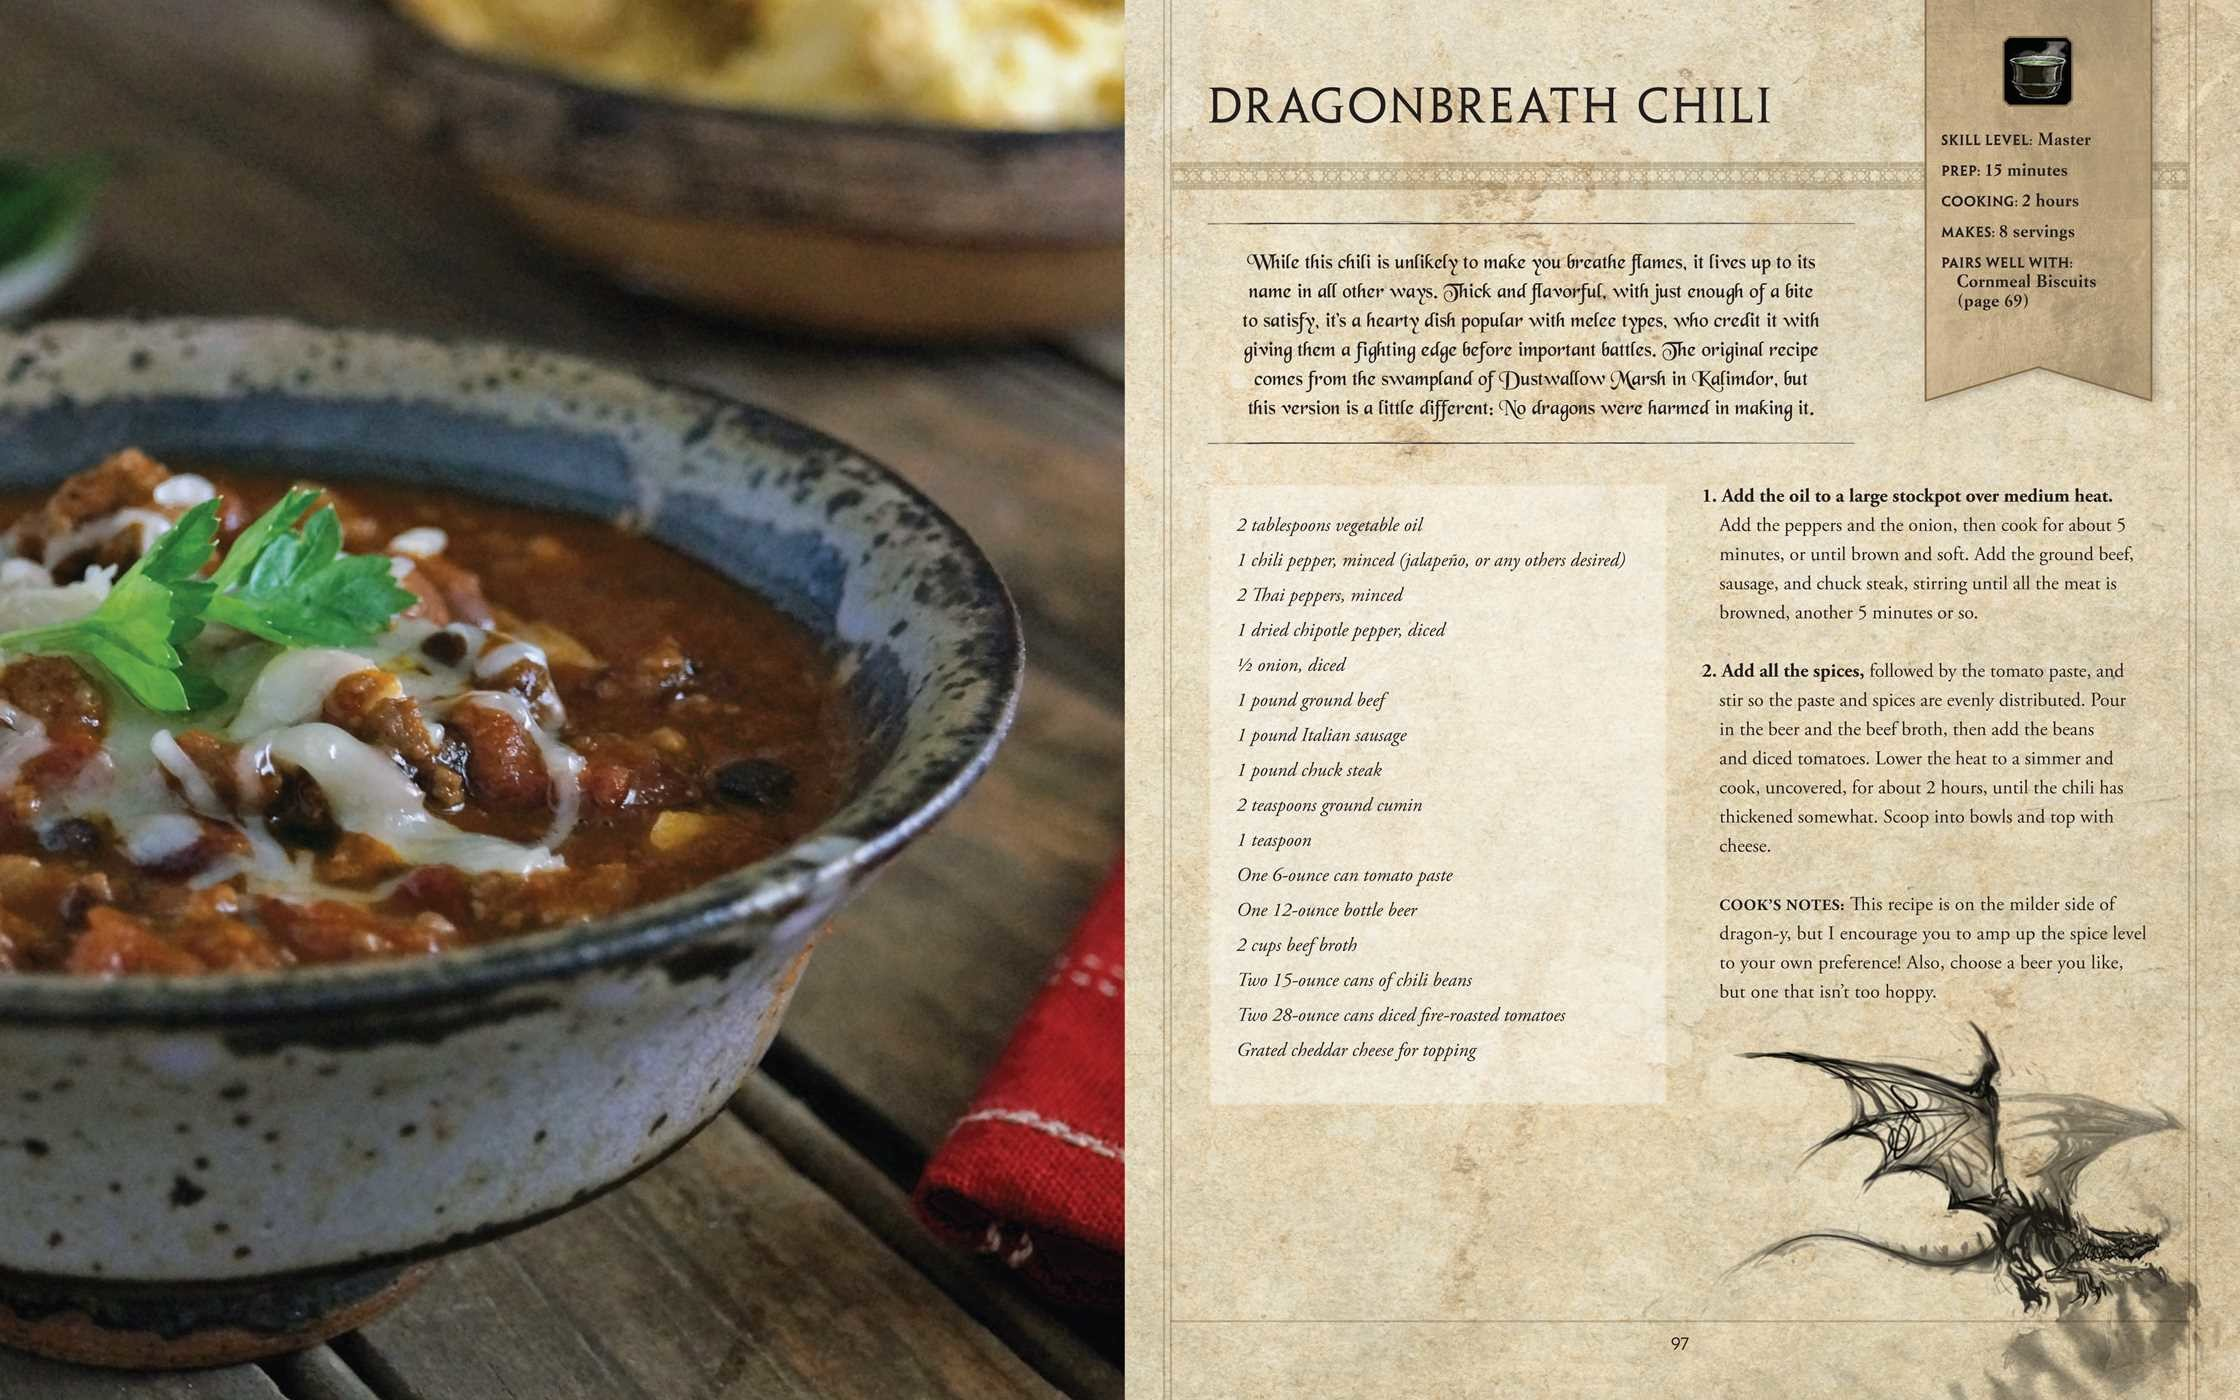 World of warcraft the official cookbook book by chelsea monroe world of warcraft the official cookbook 978160887804803 forumfinder Choice Image